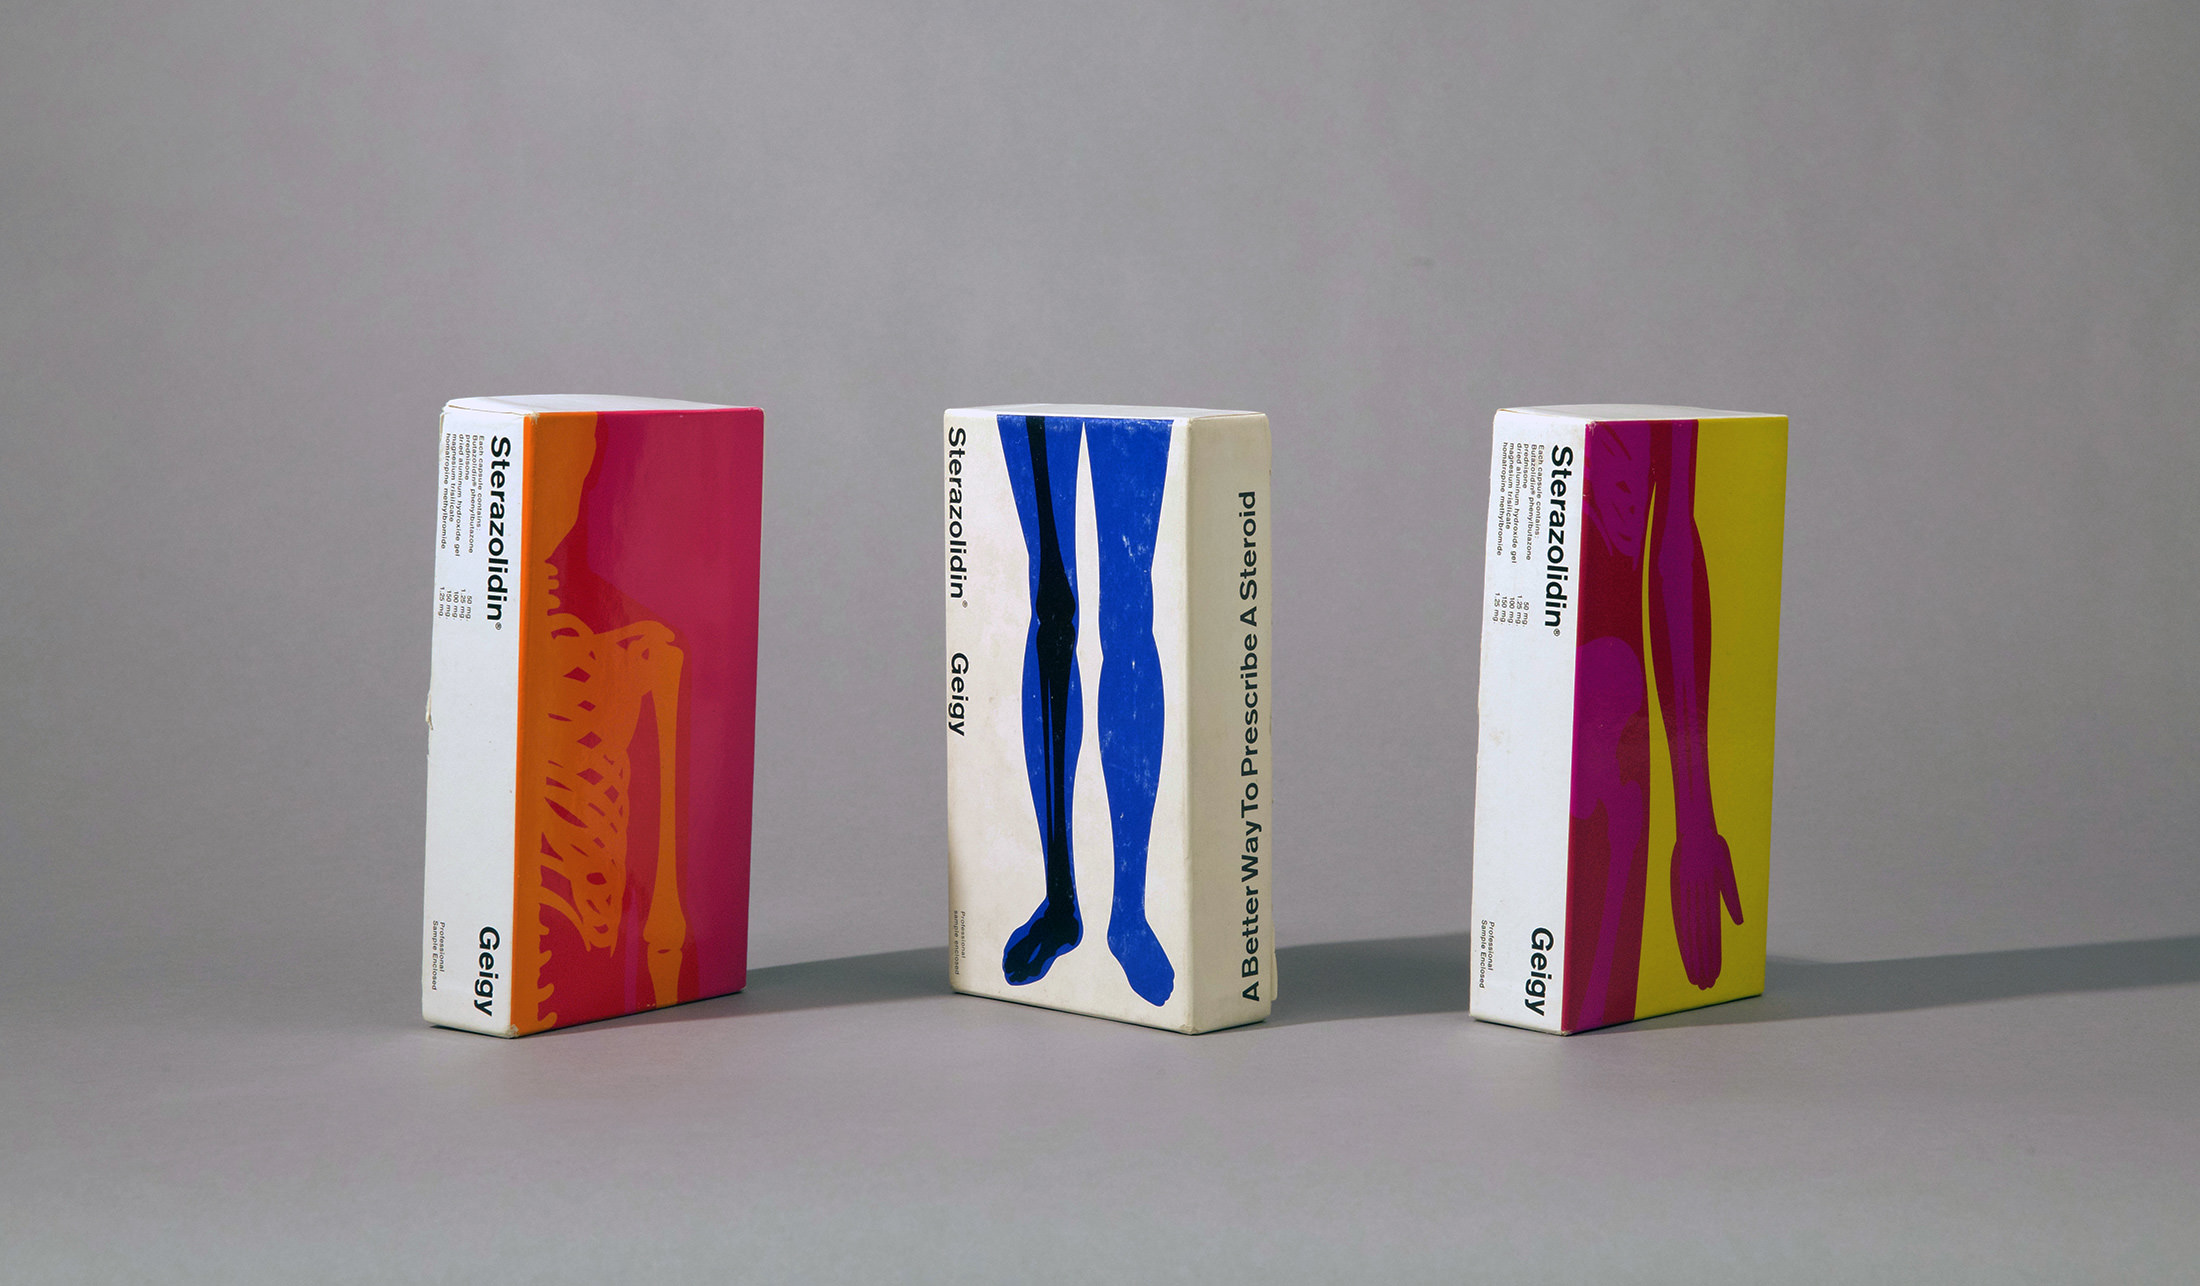 Packaging for Sterazolidin by Fred Troller, 1966